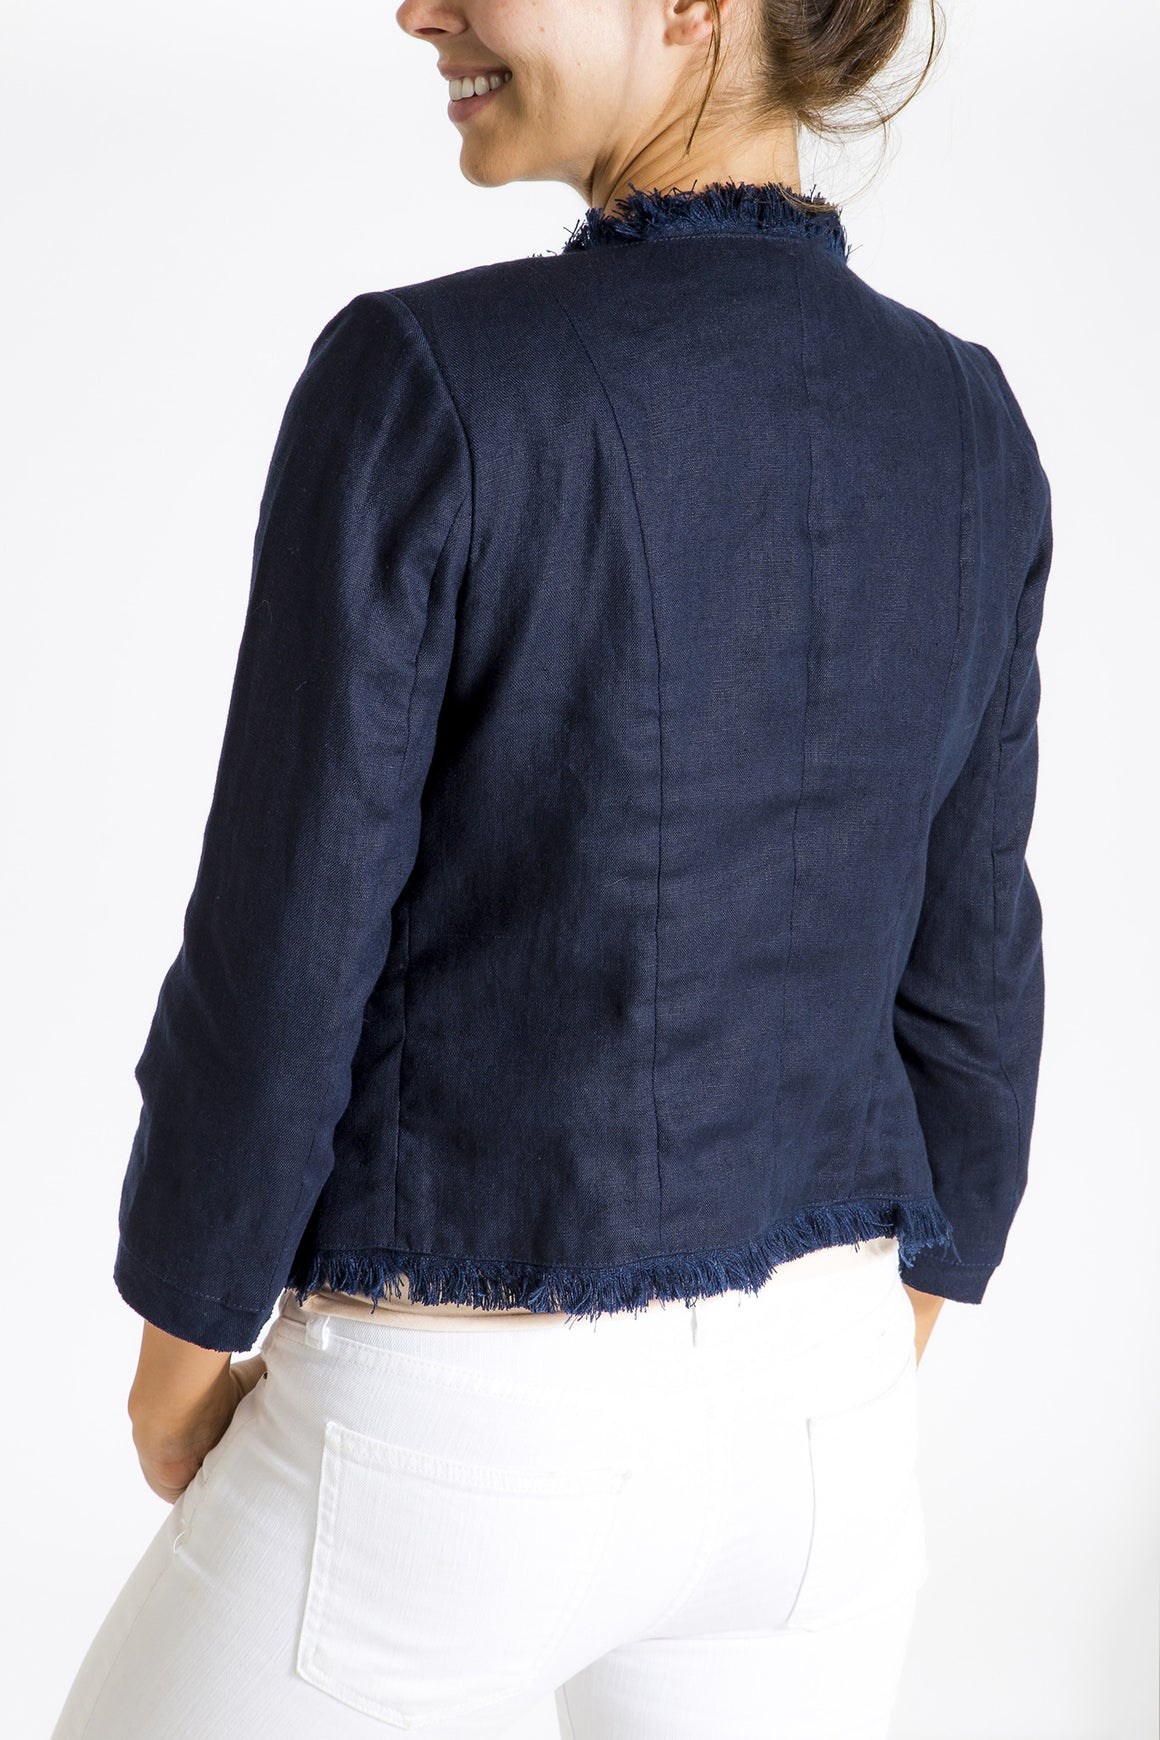 The French Linen Jacket